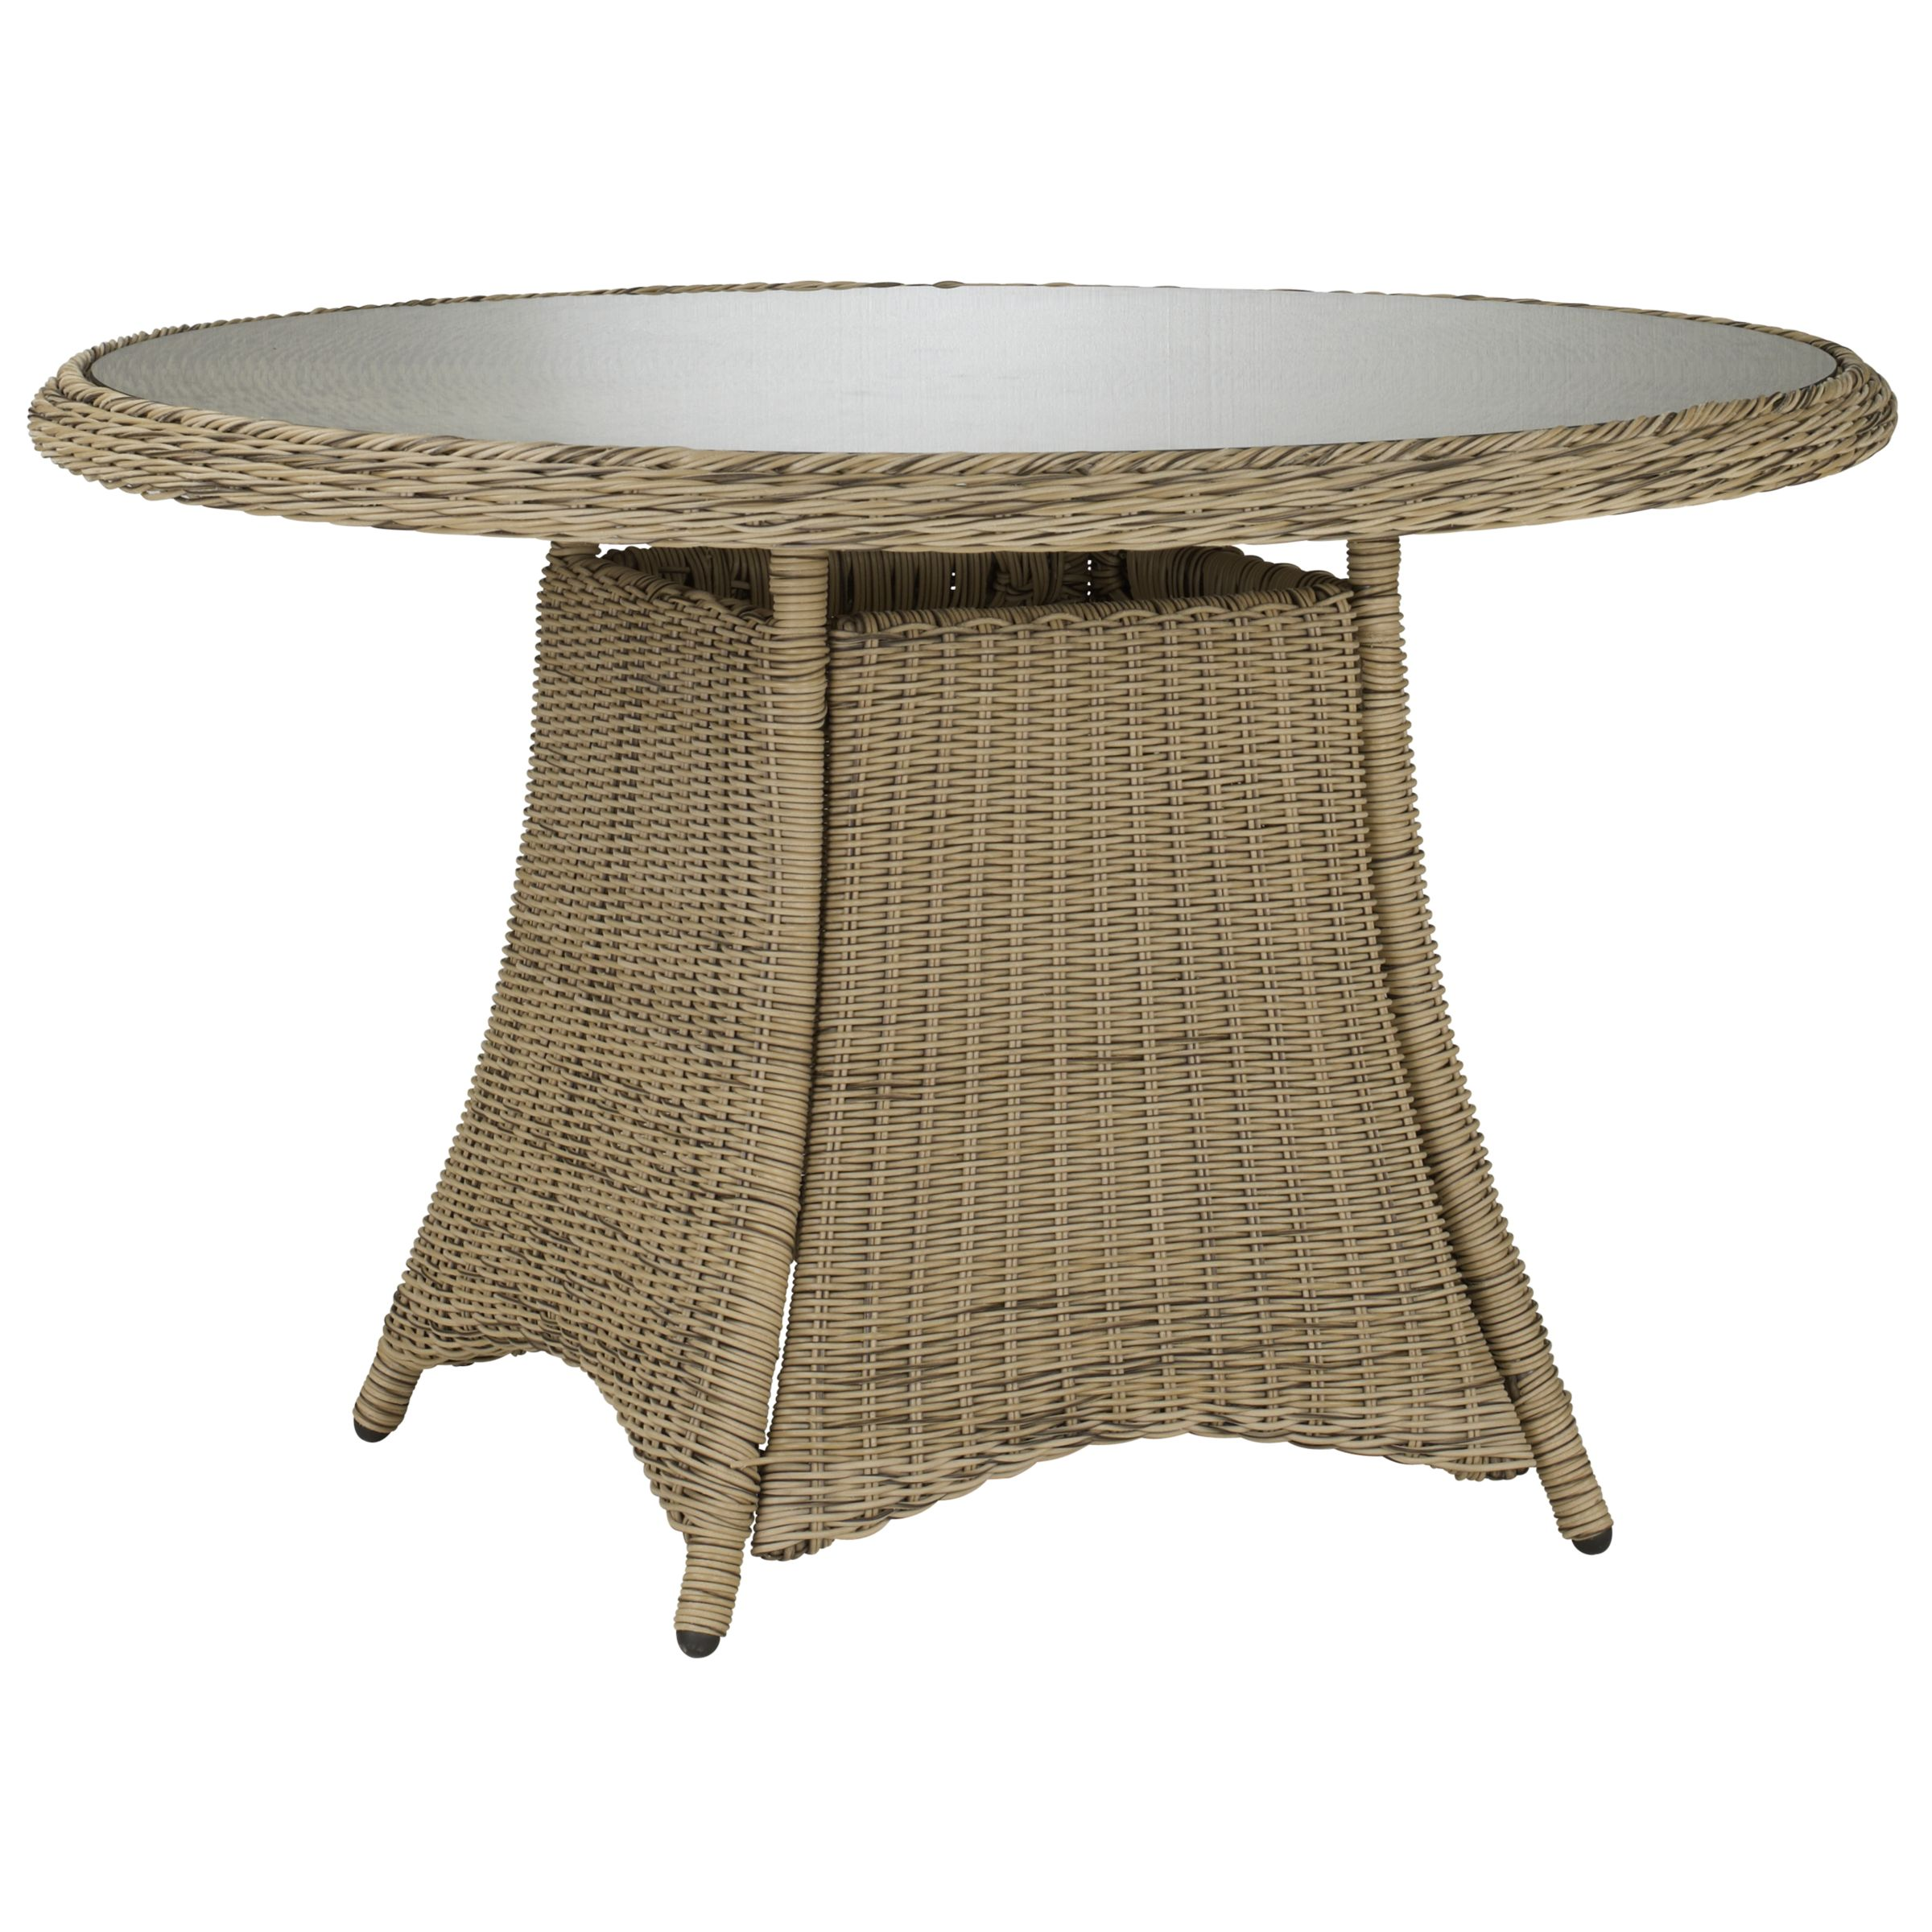 John Lewis Sienna Outdoor Dining Table